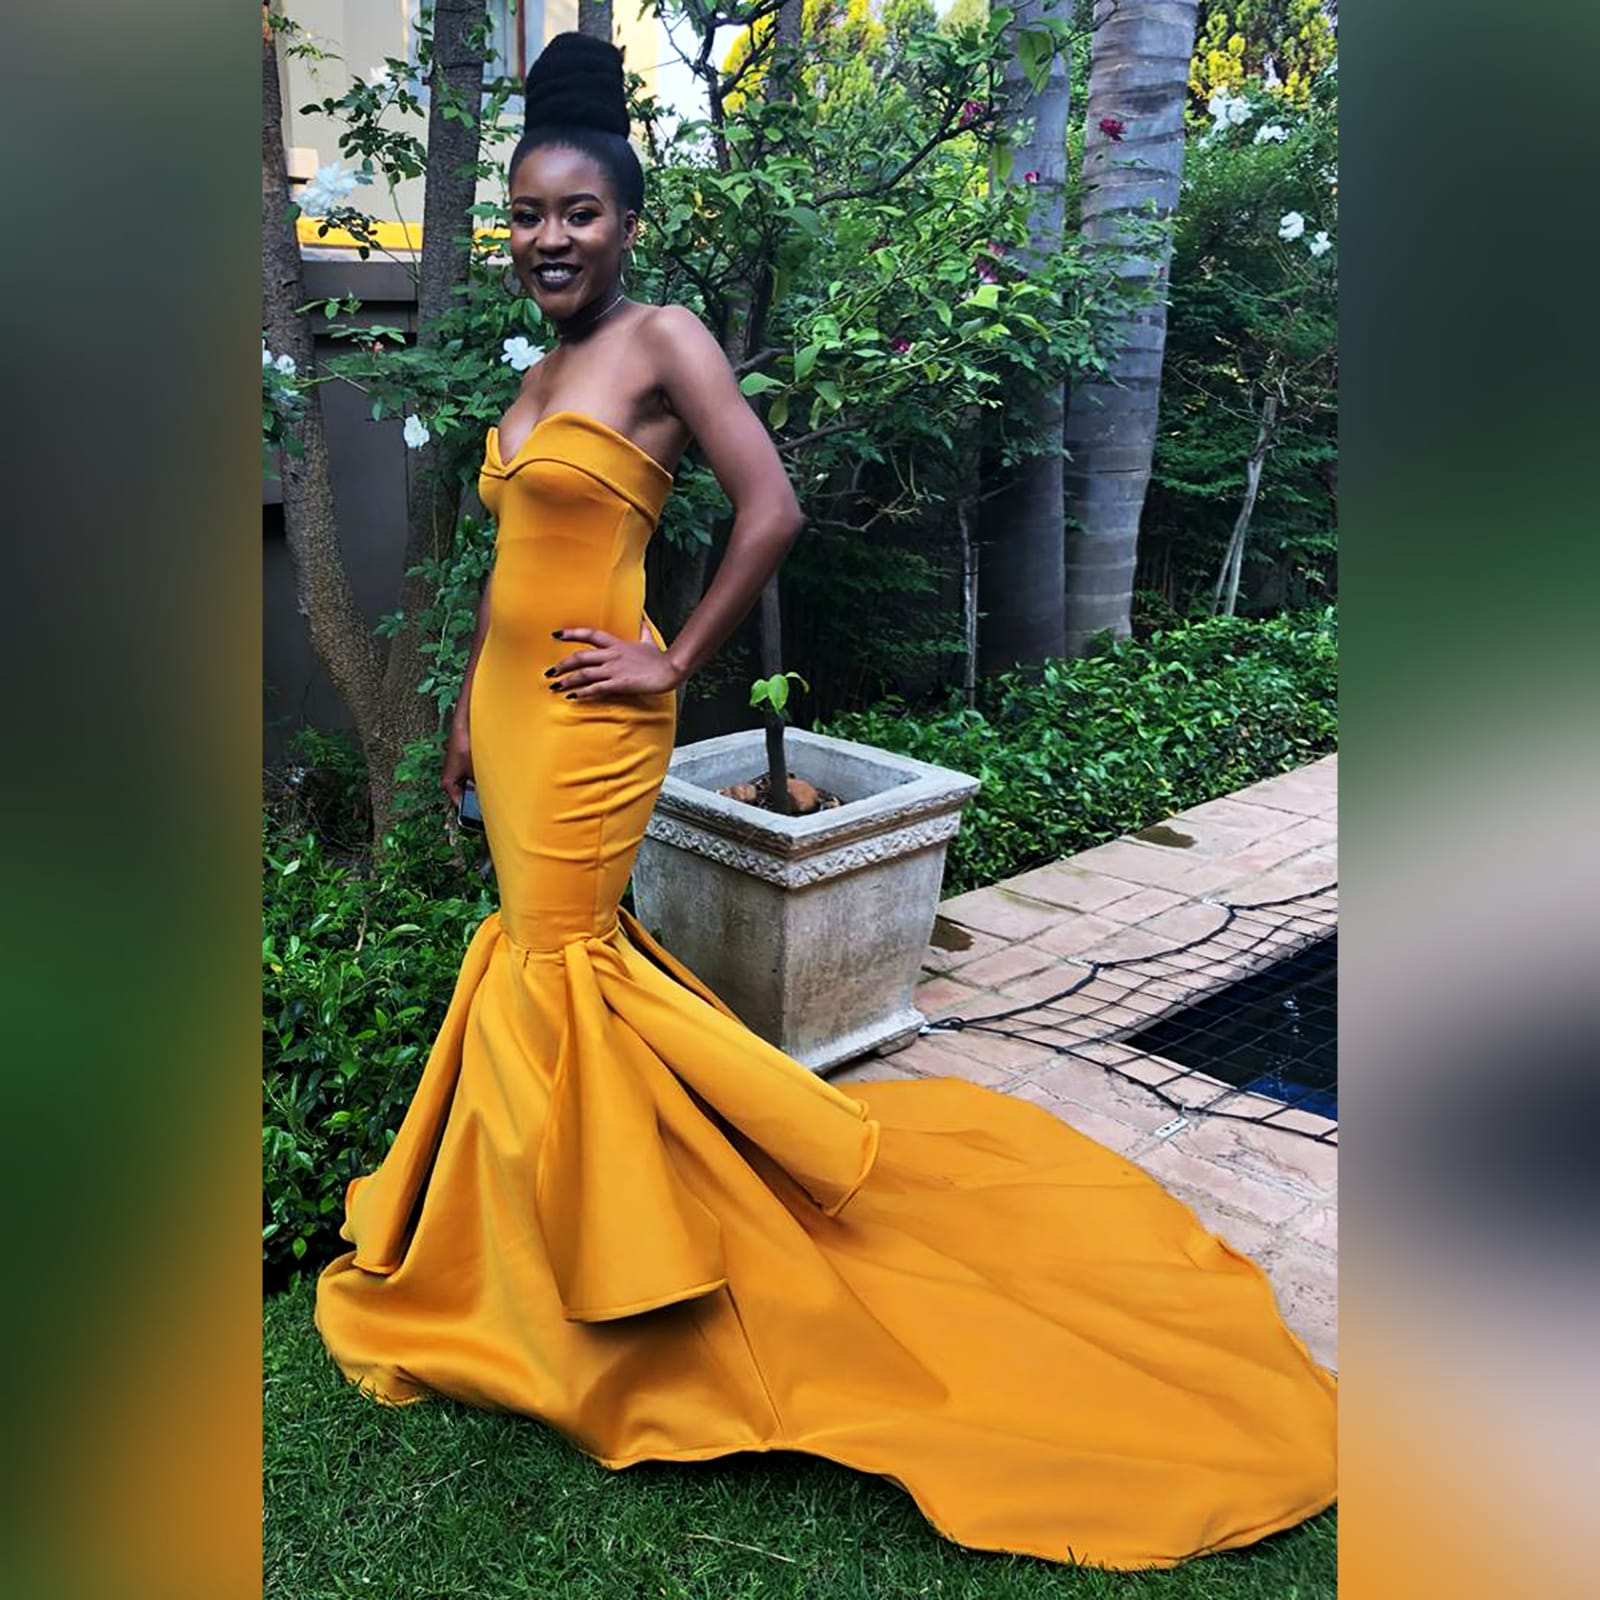 Mustard yellow sweetheart neckline mermaid prom dress 1 mustard yellow sweetheart neckline mermaid prom dress. With train and detailed stiff tubes